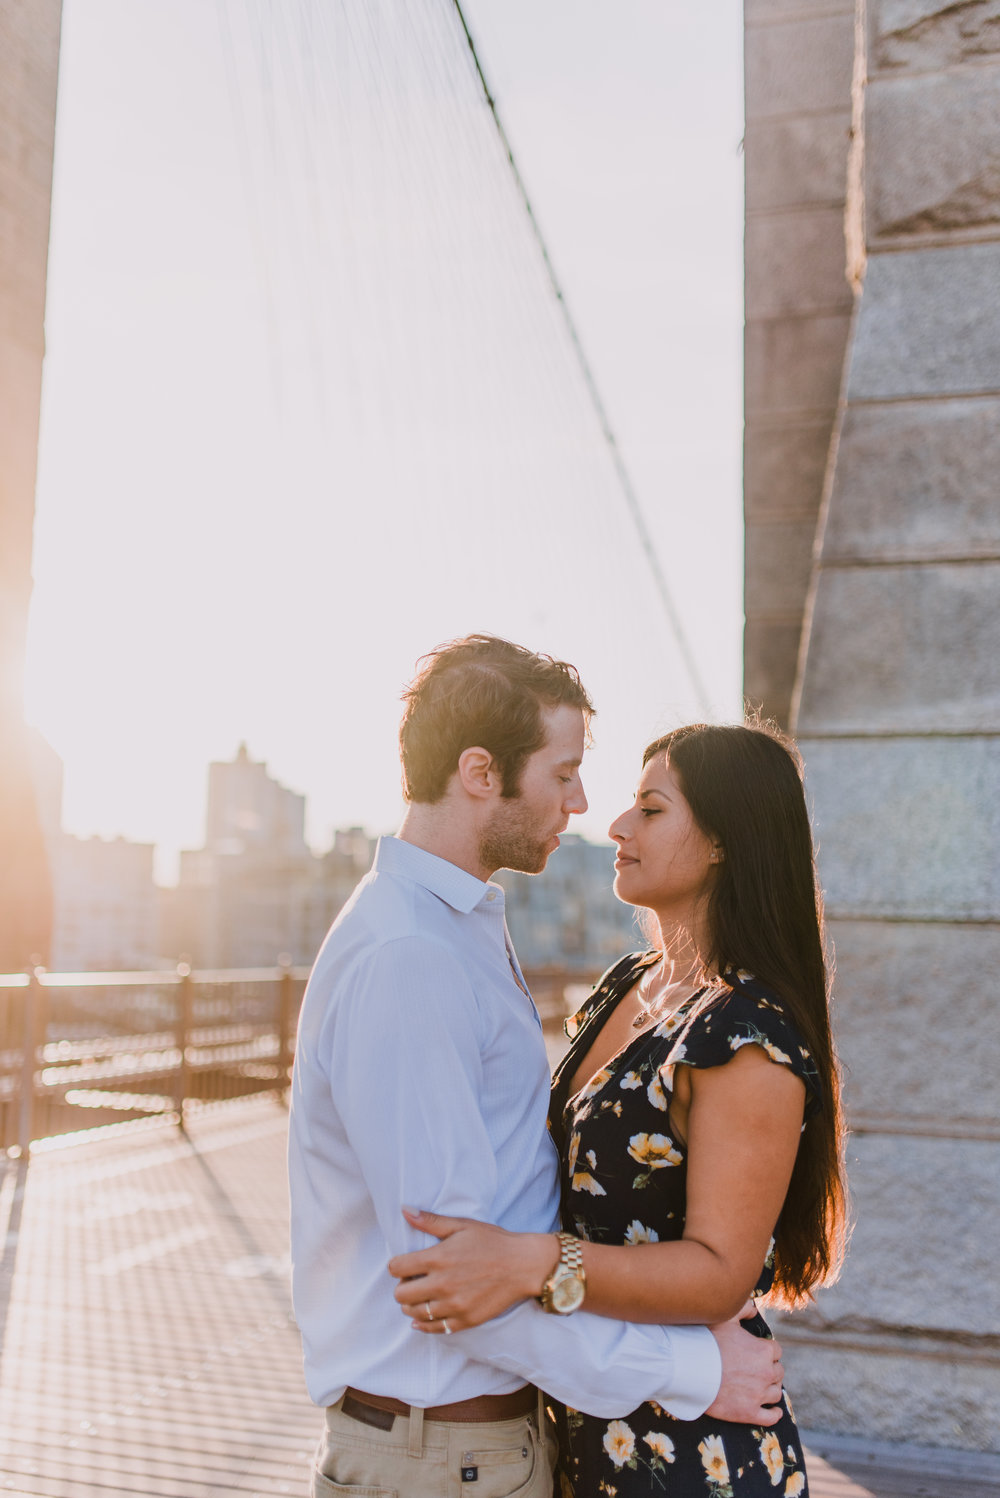 brooklyn bridge engagement shoot, couple shoot nyc, nyc wedding photographer, destination wedding photographer, documentary wedding photographer in nyc (11).jpg